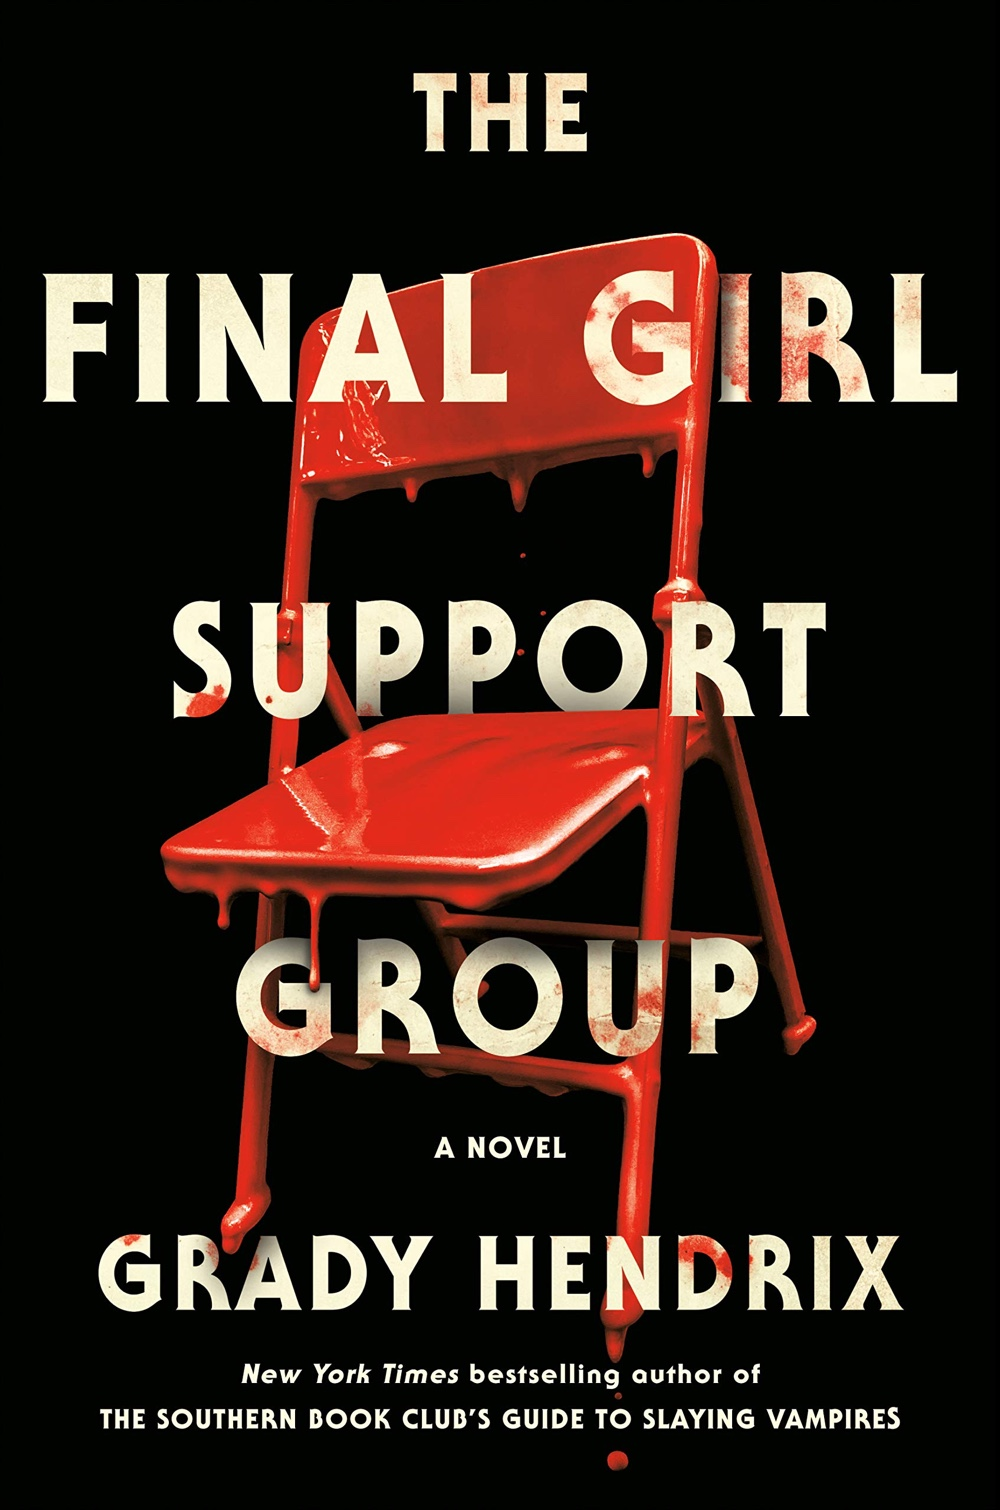 The Final Girl Support Group by Grady Hendrix   Audiobook Review